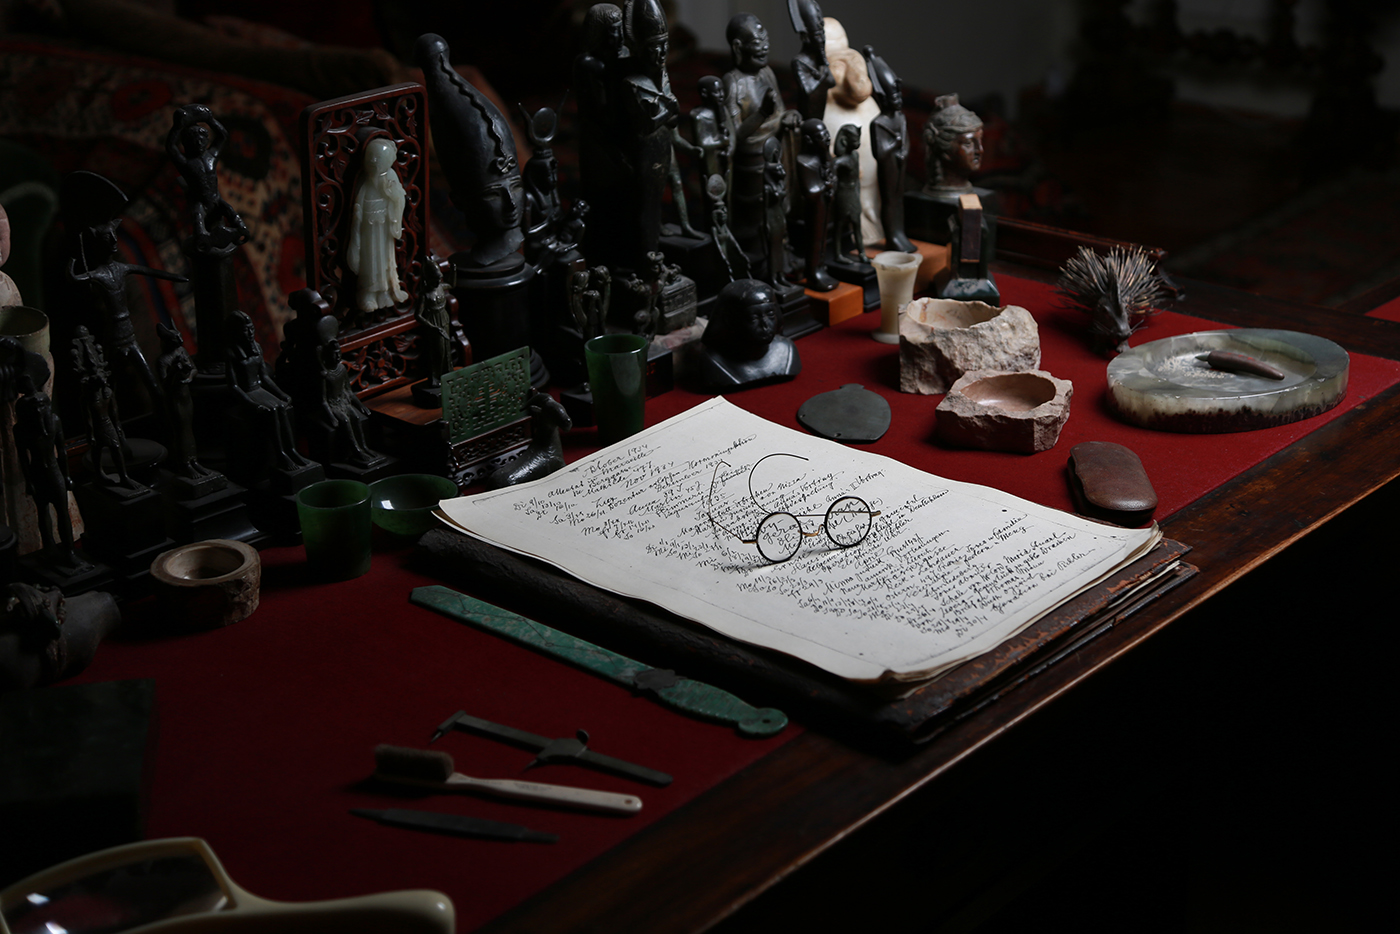 Photograph of Sigmund Freud's desk. On it are some antiquities, a page from his diary and his spectacles.